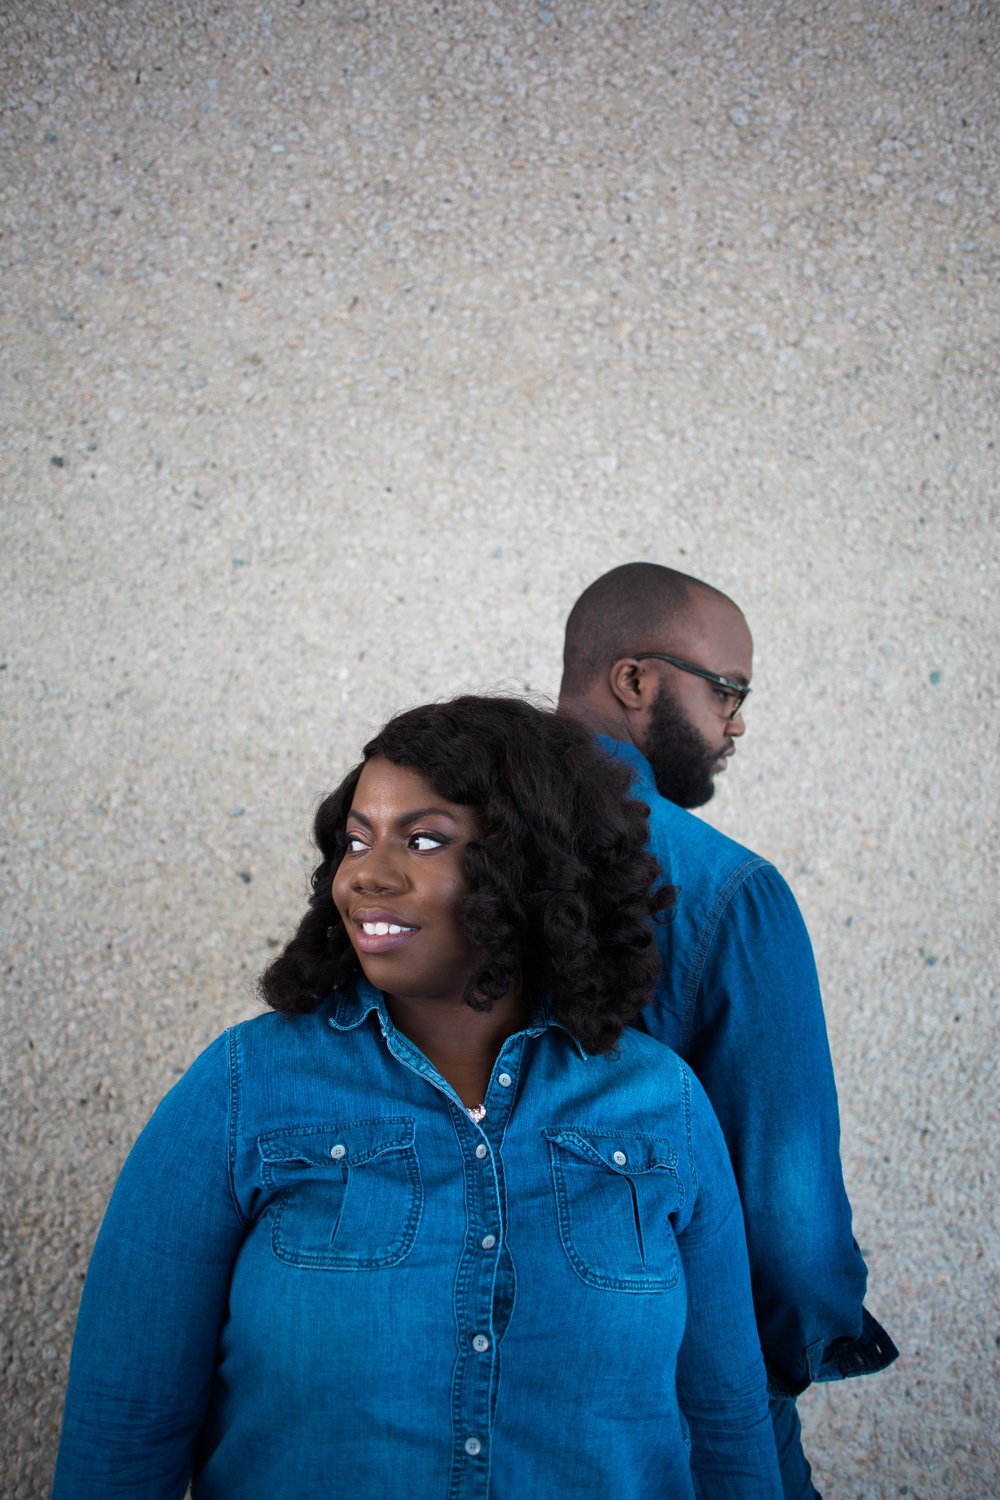 DC Engagement Session at th Hishhorn Museum-3.jpg